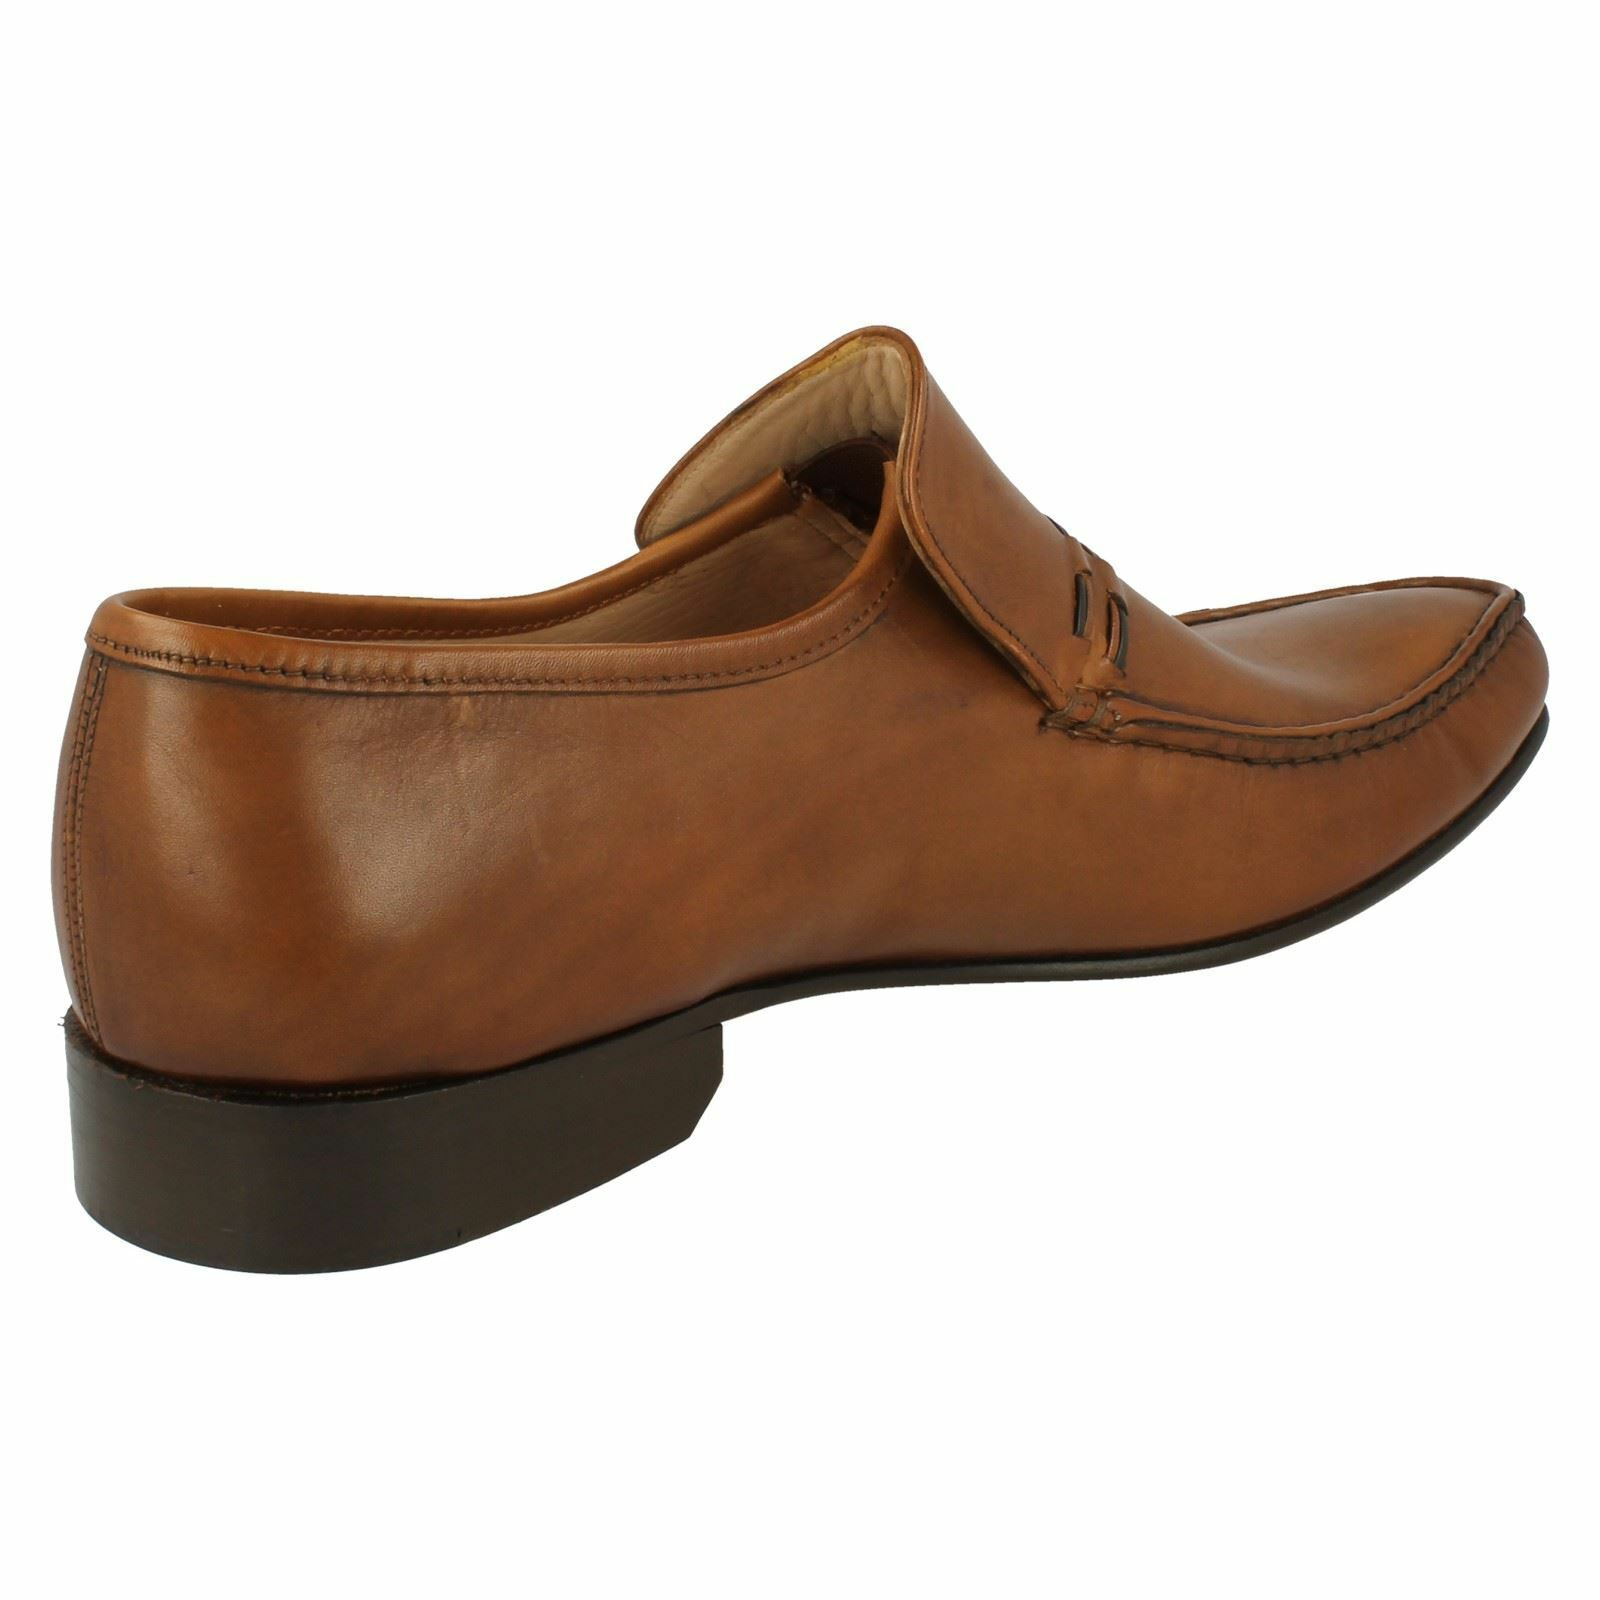 Mens Nevada brown leather Grenson slip on shoe by Grenson leather Feathermaster 33ecd7